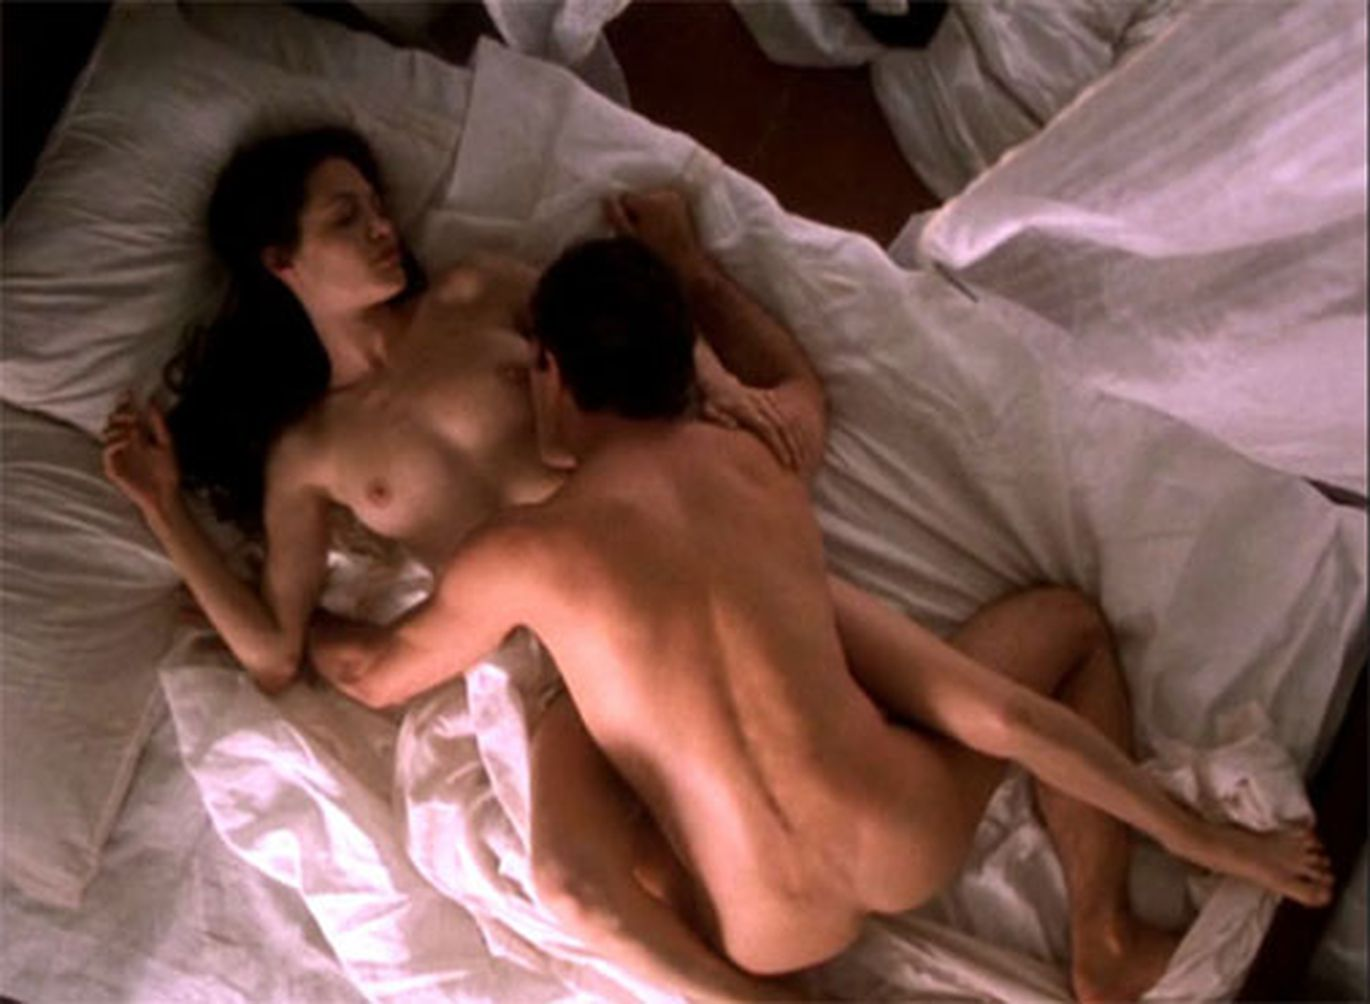 angelina-jolie-sex-scene-video-reese-witherspoon-nude-sucking